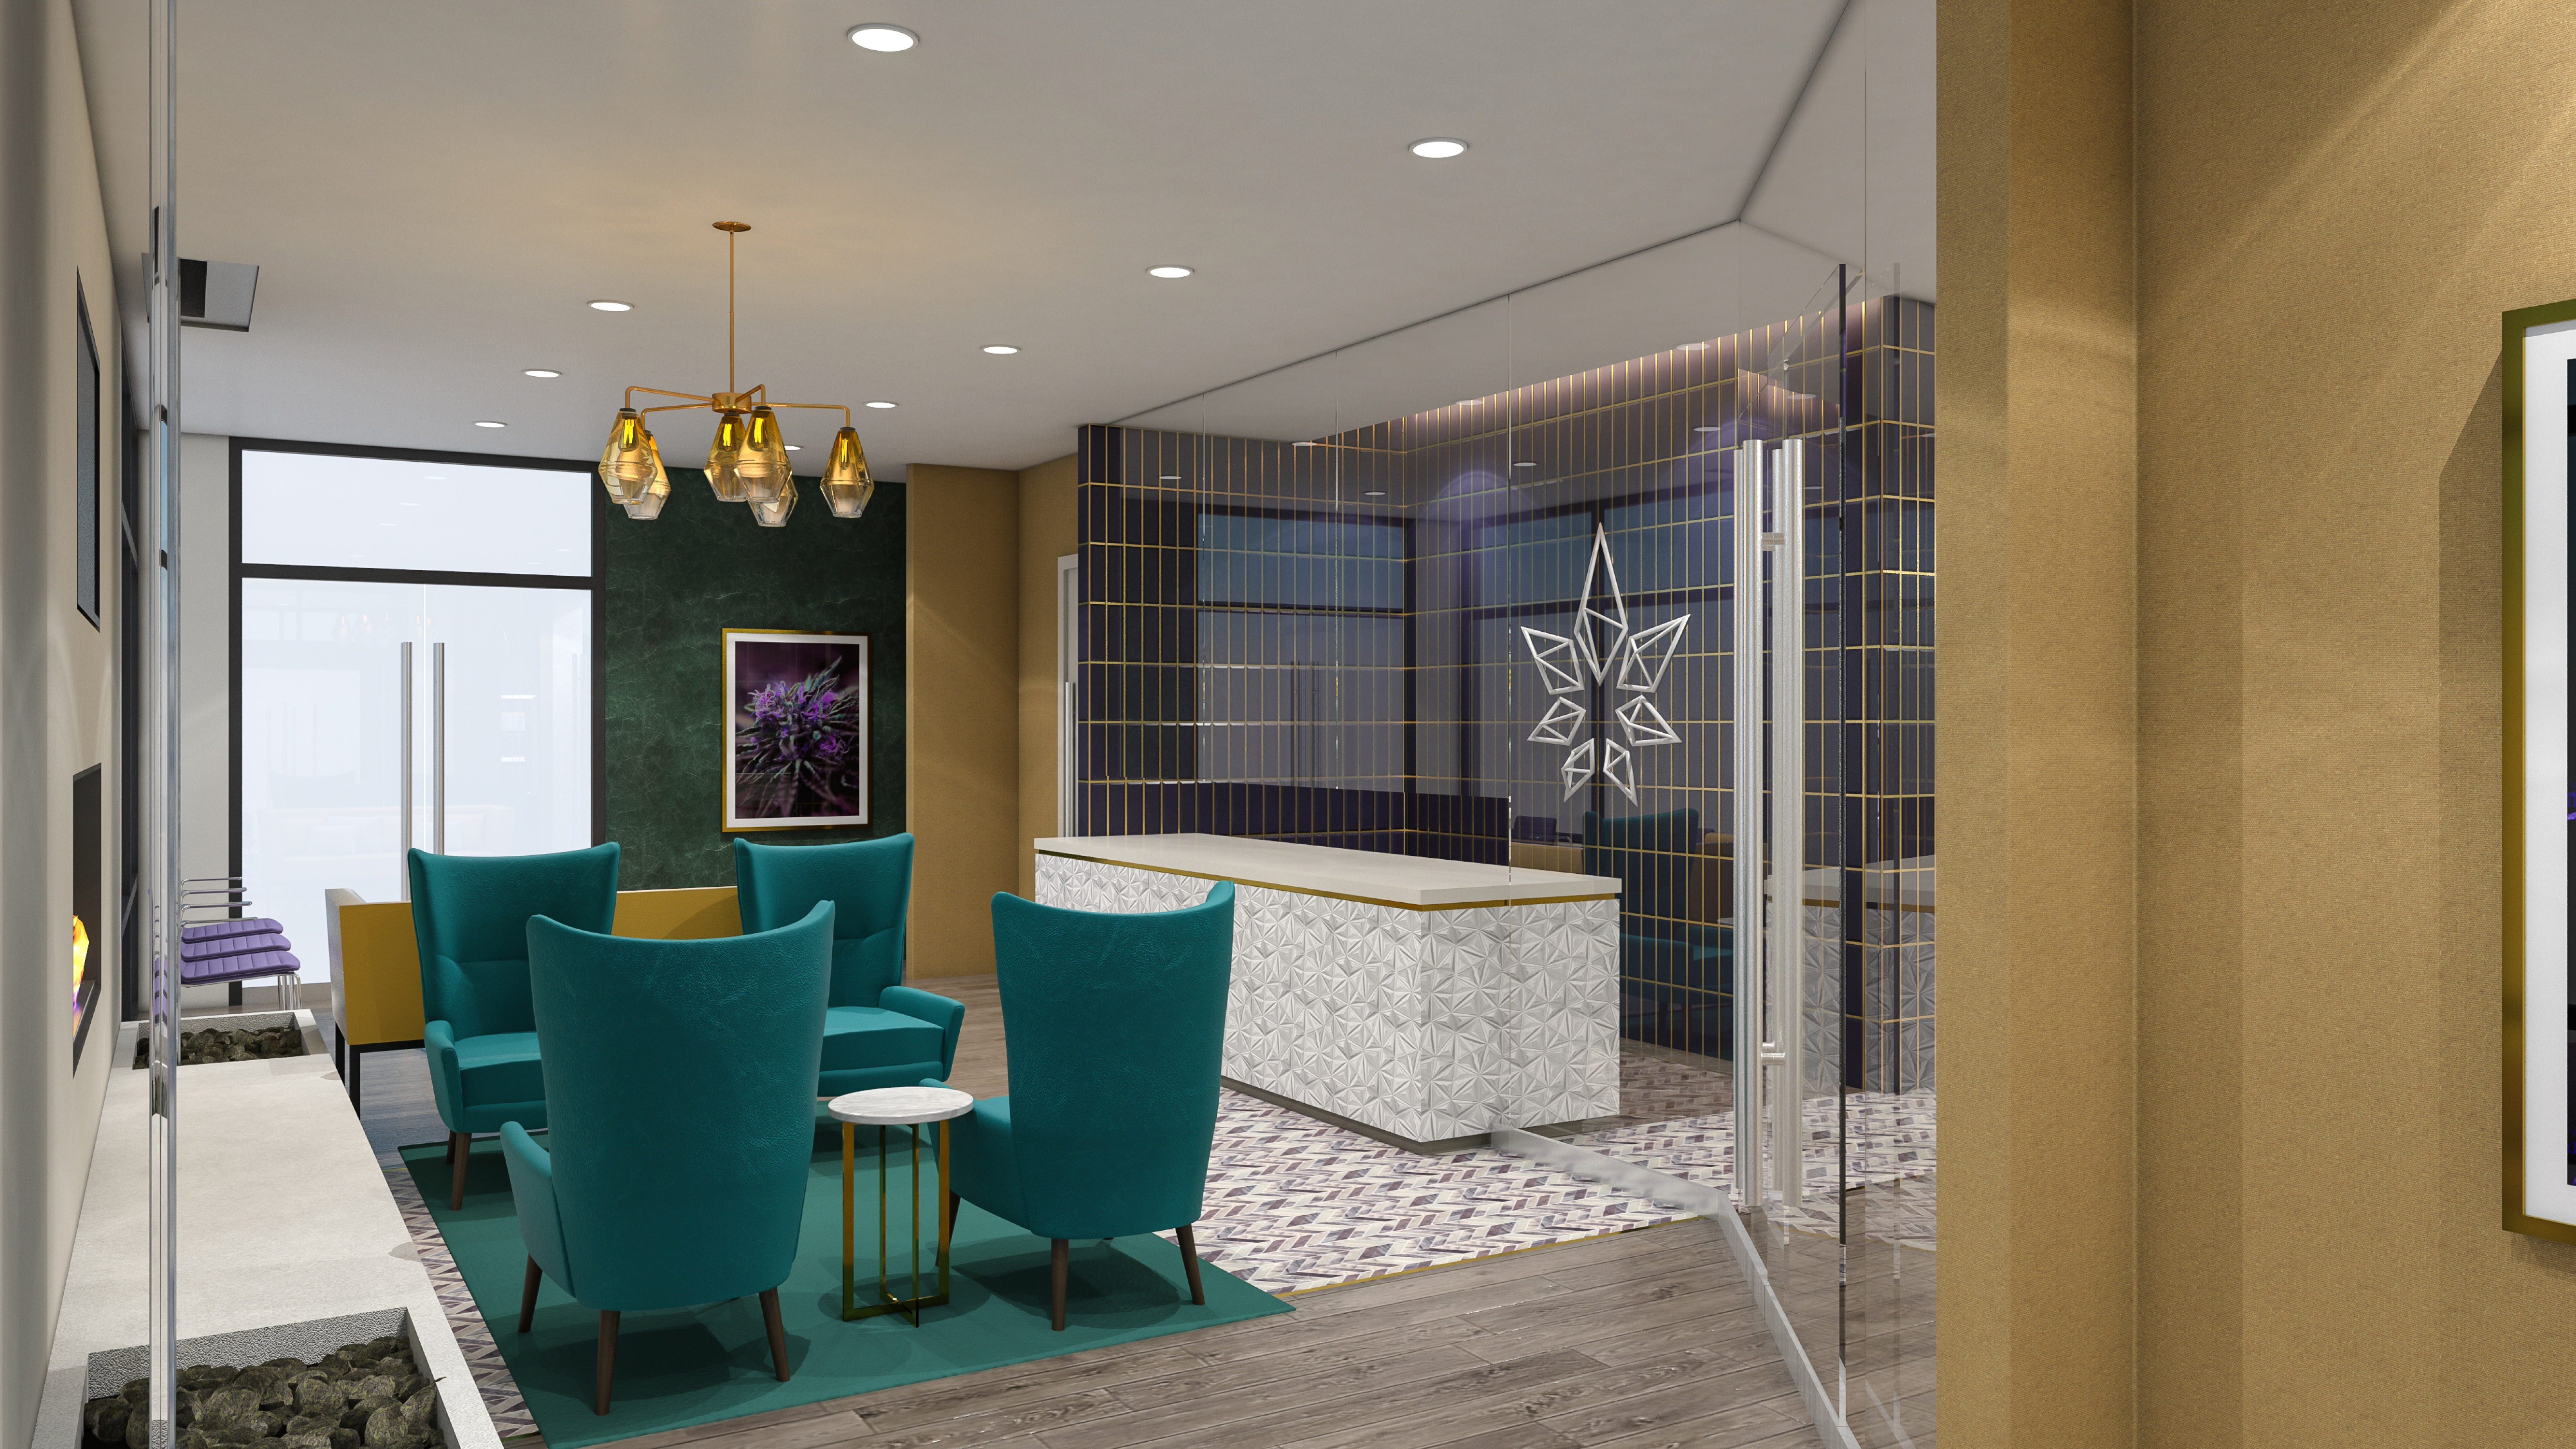 Nature's Remedy Dispensary - Design Conceptualization by High Road Studio